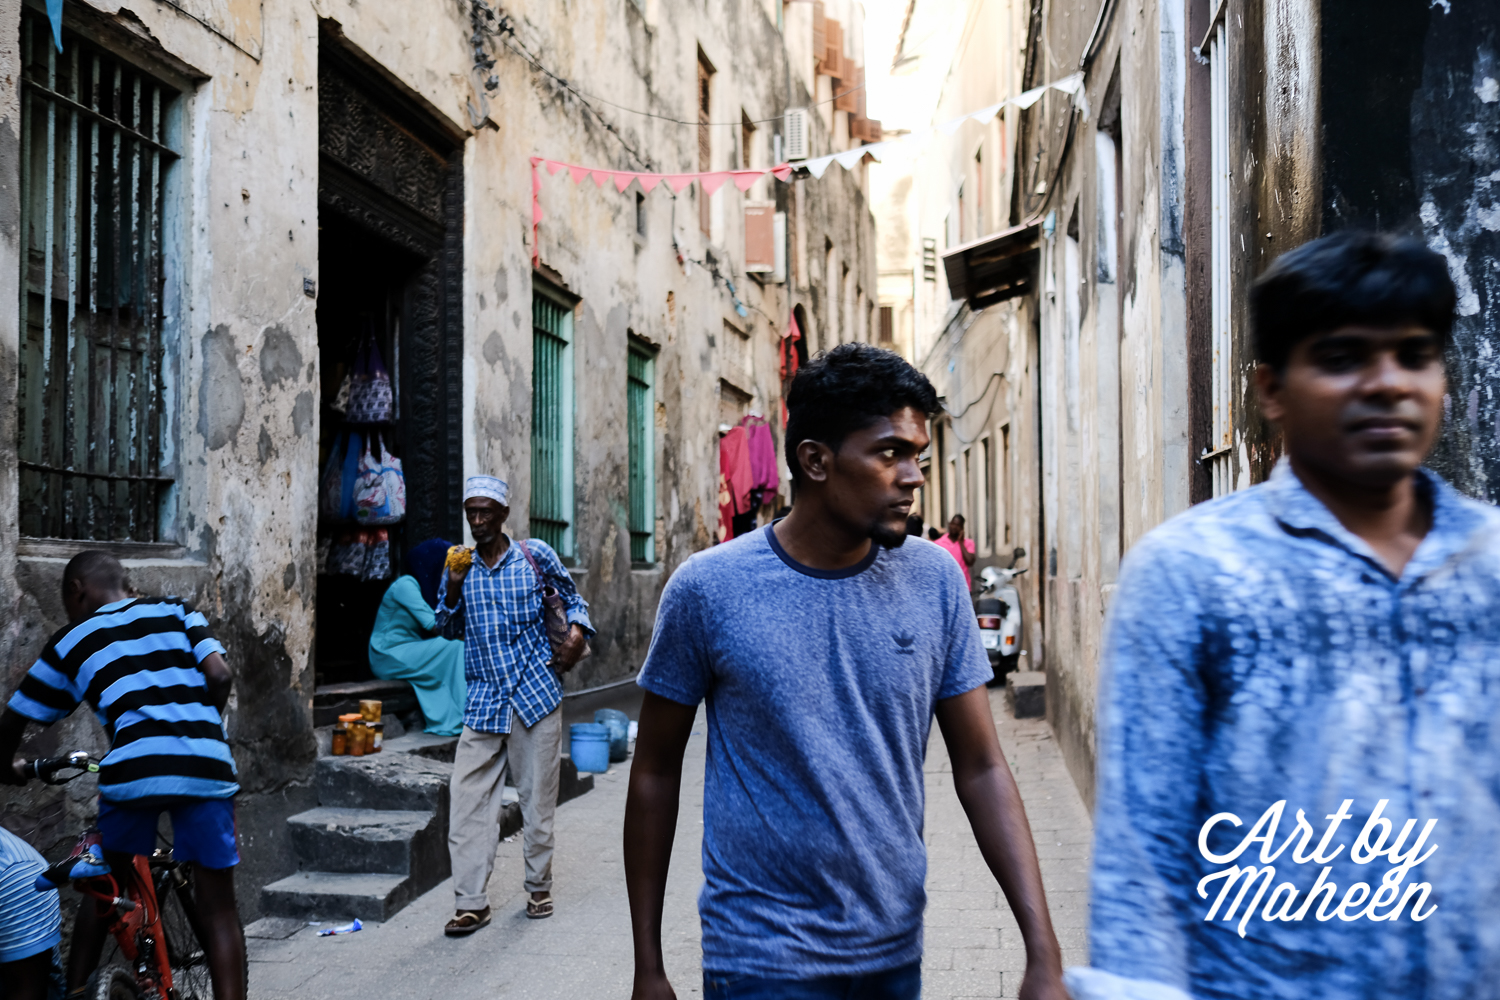 There is a massive mix of culture in Stone Town. Indians, Arabs and Swahilis live side by side despite their uncomfortable history.